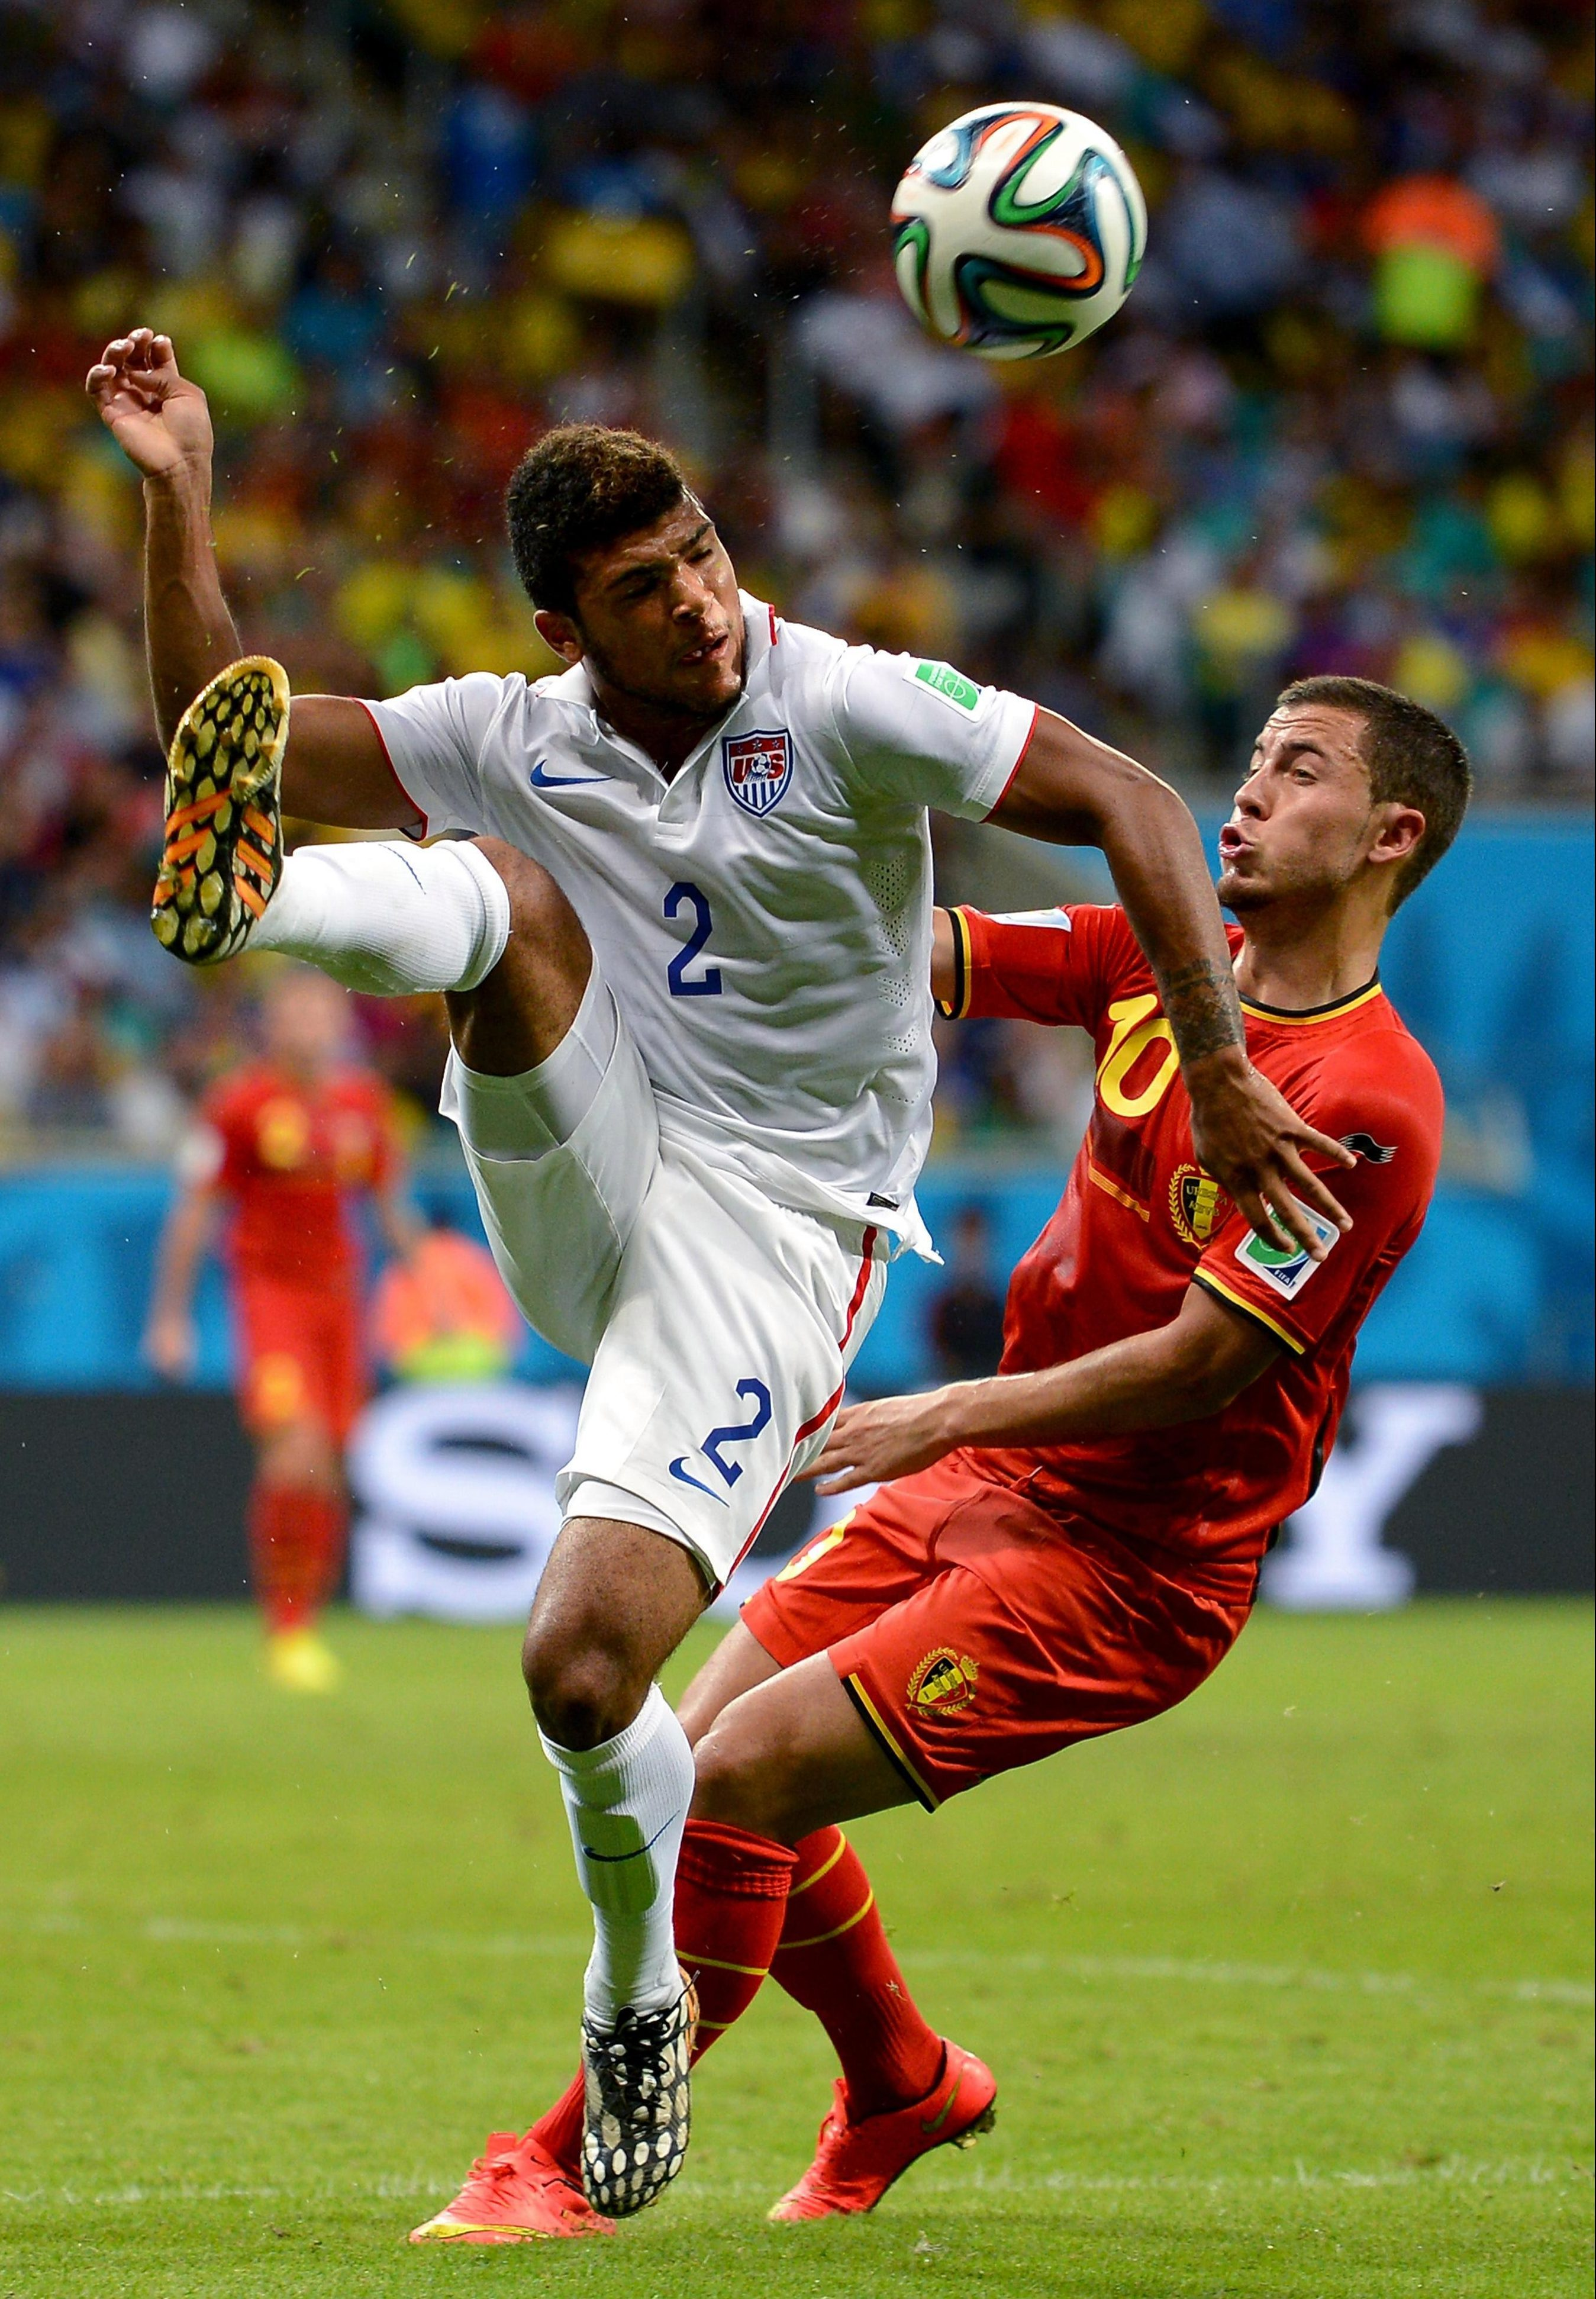 Yedlin pocketed Hazard